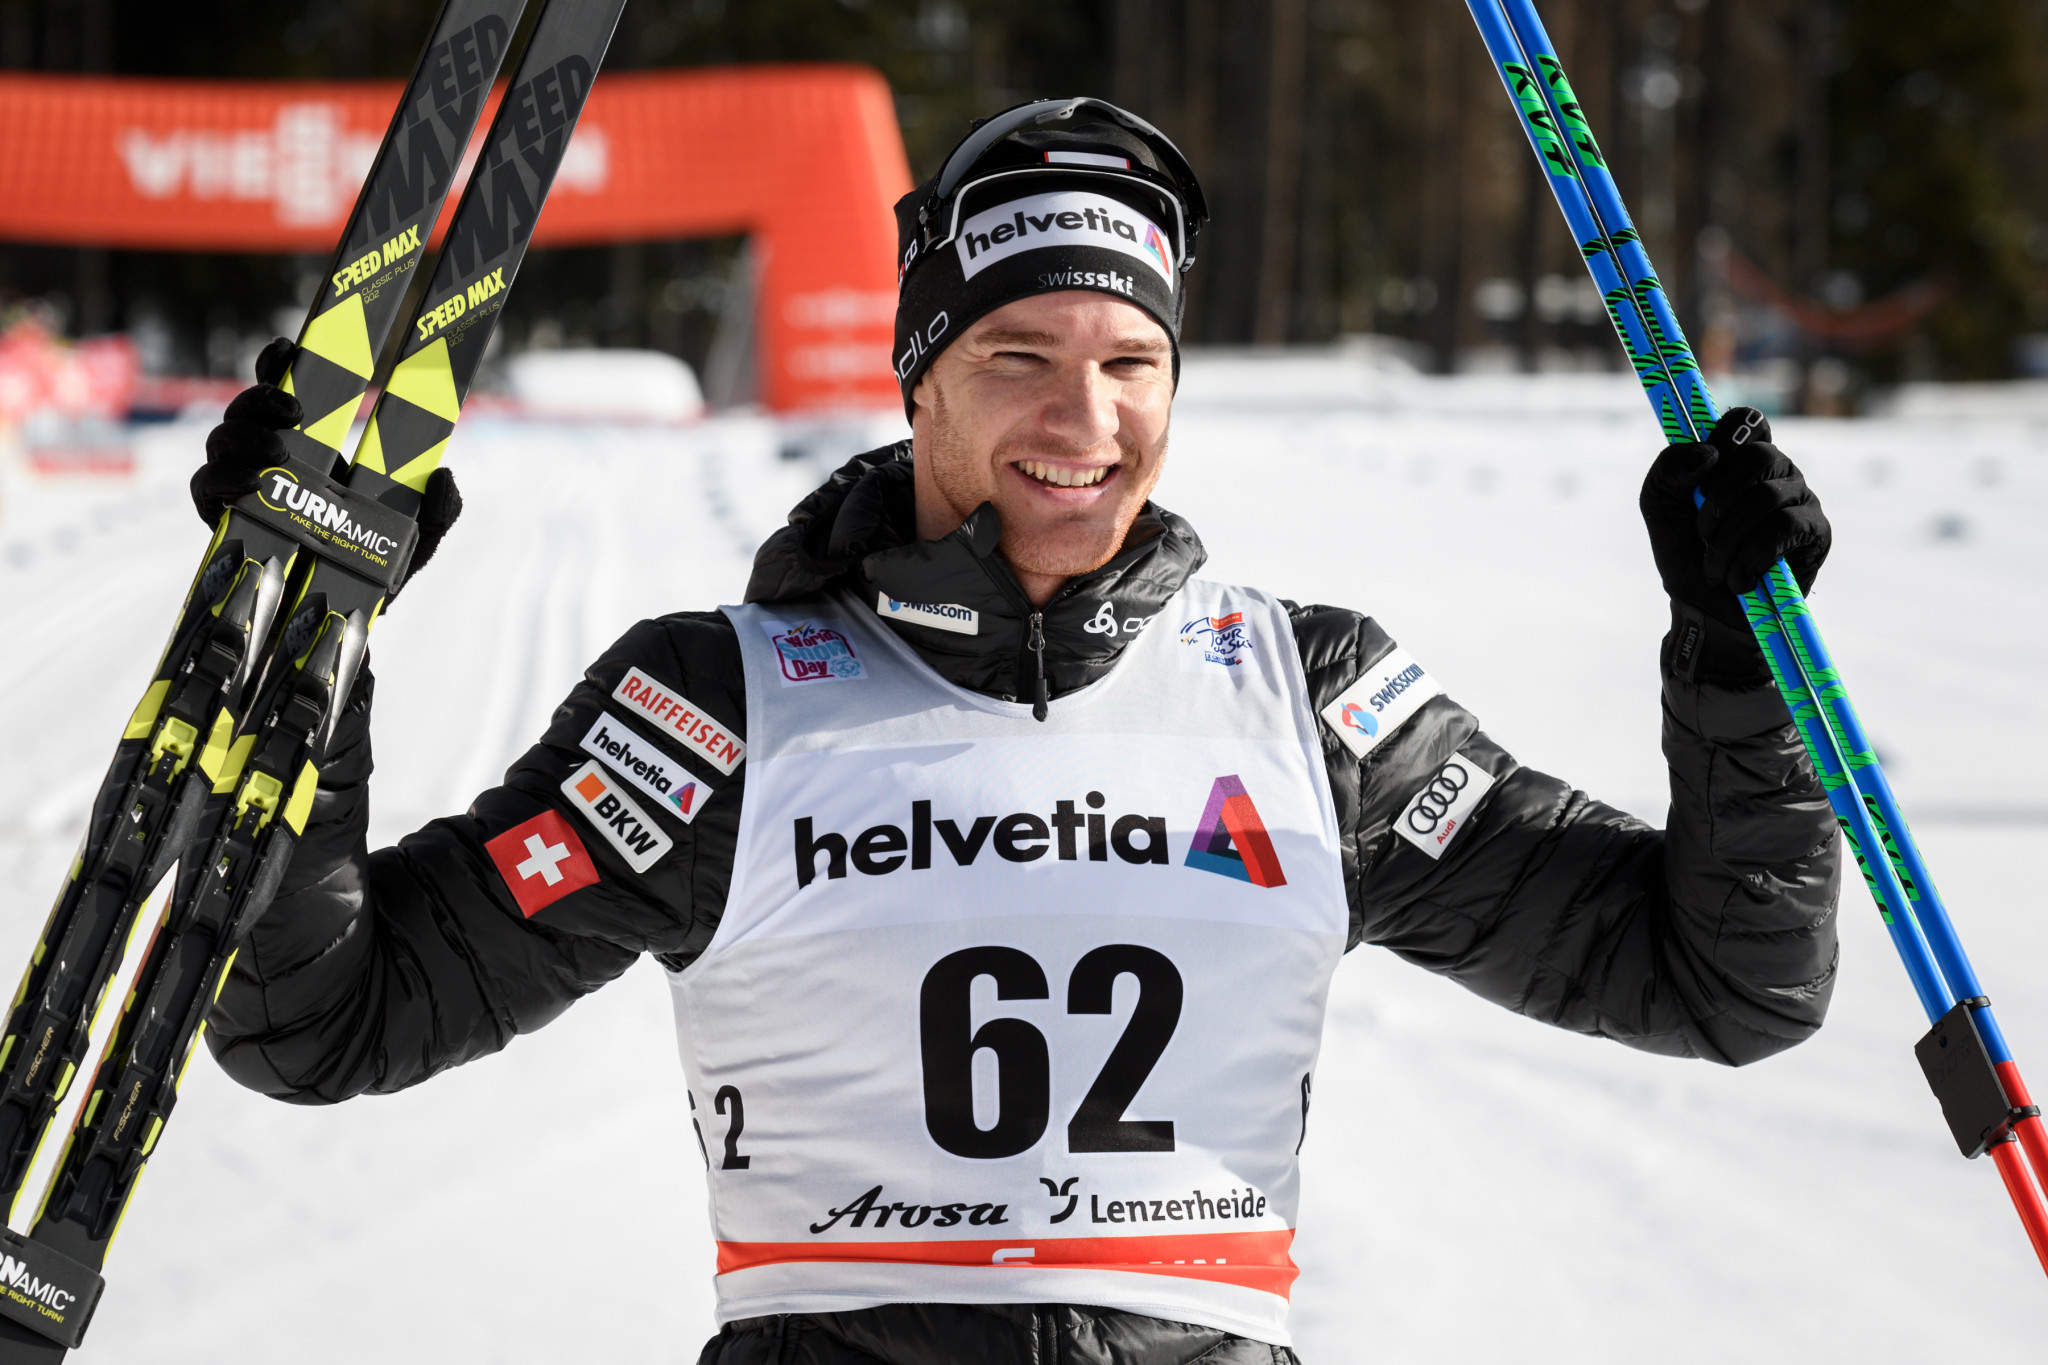 Dario Cologna claimed his 23rd overall World Cup victory in Lenzerheide